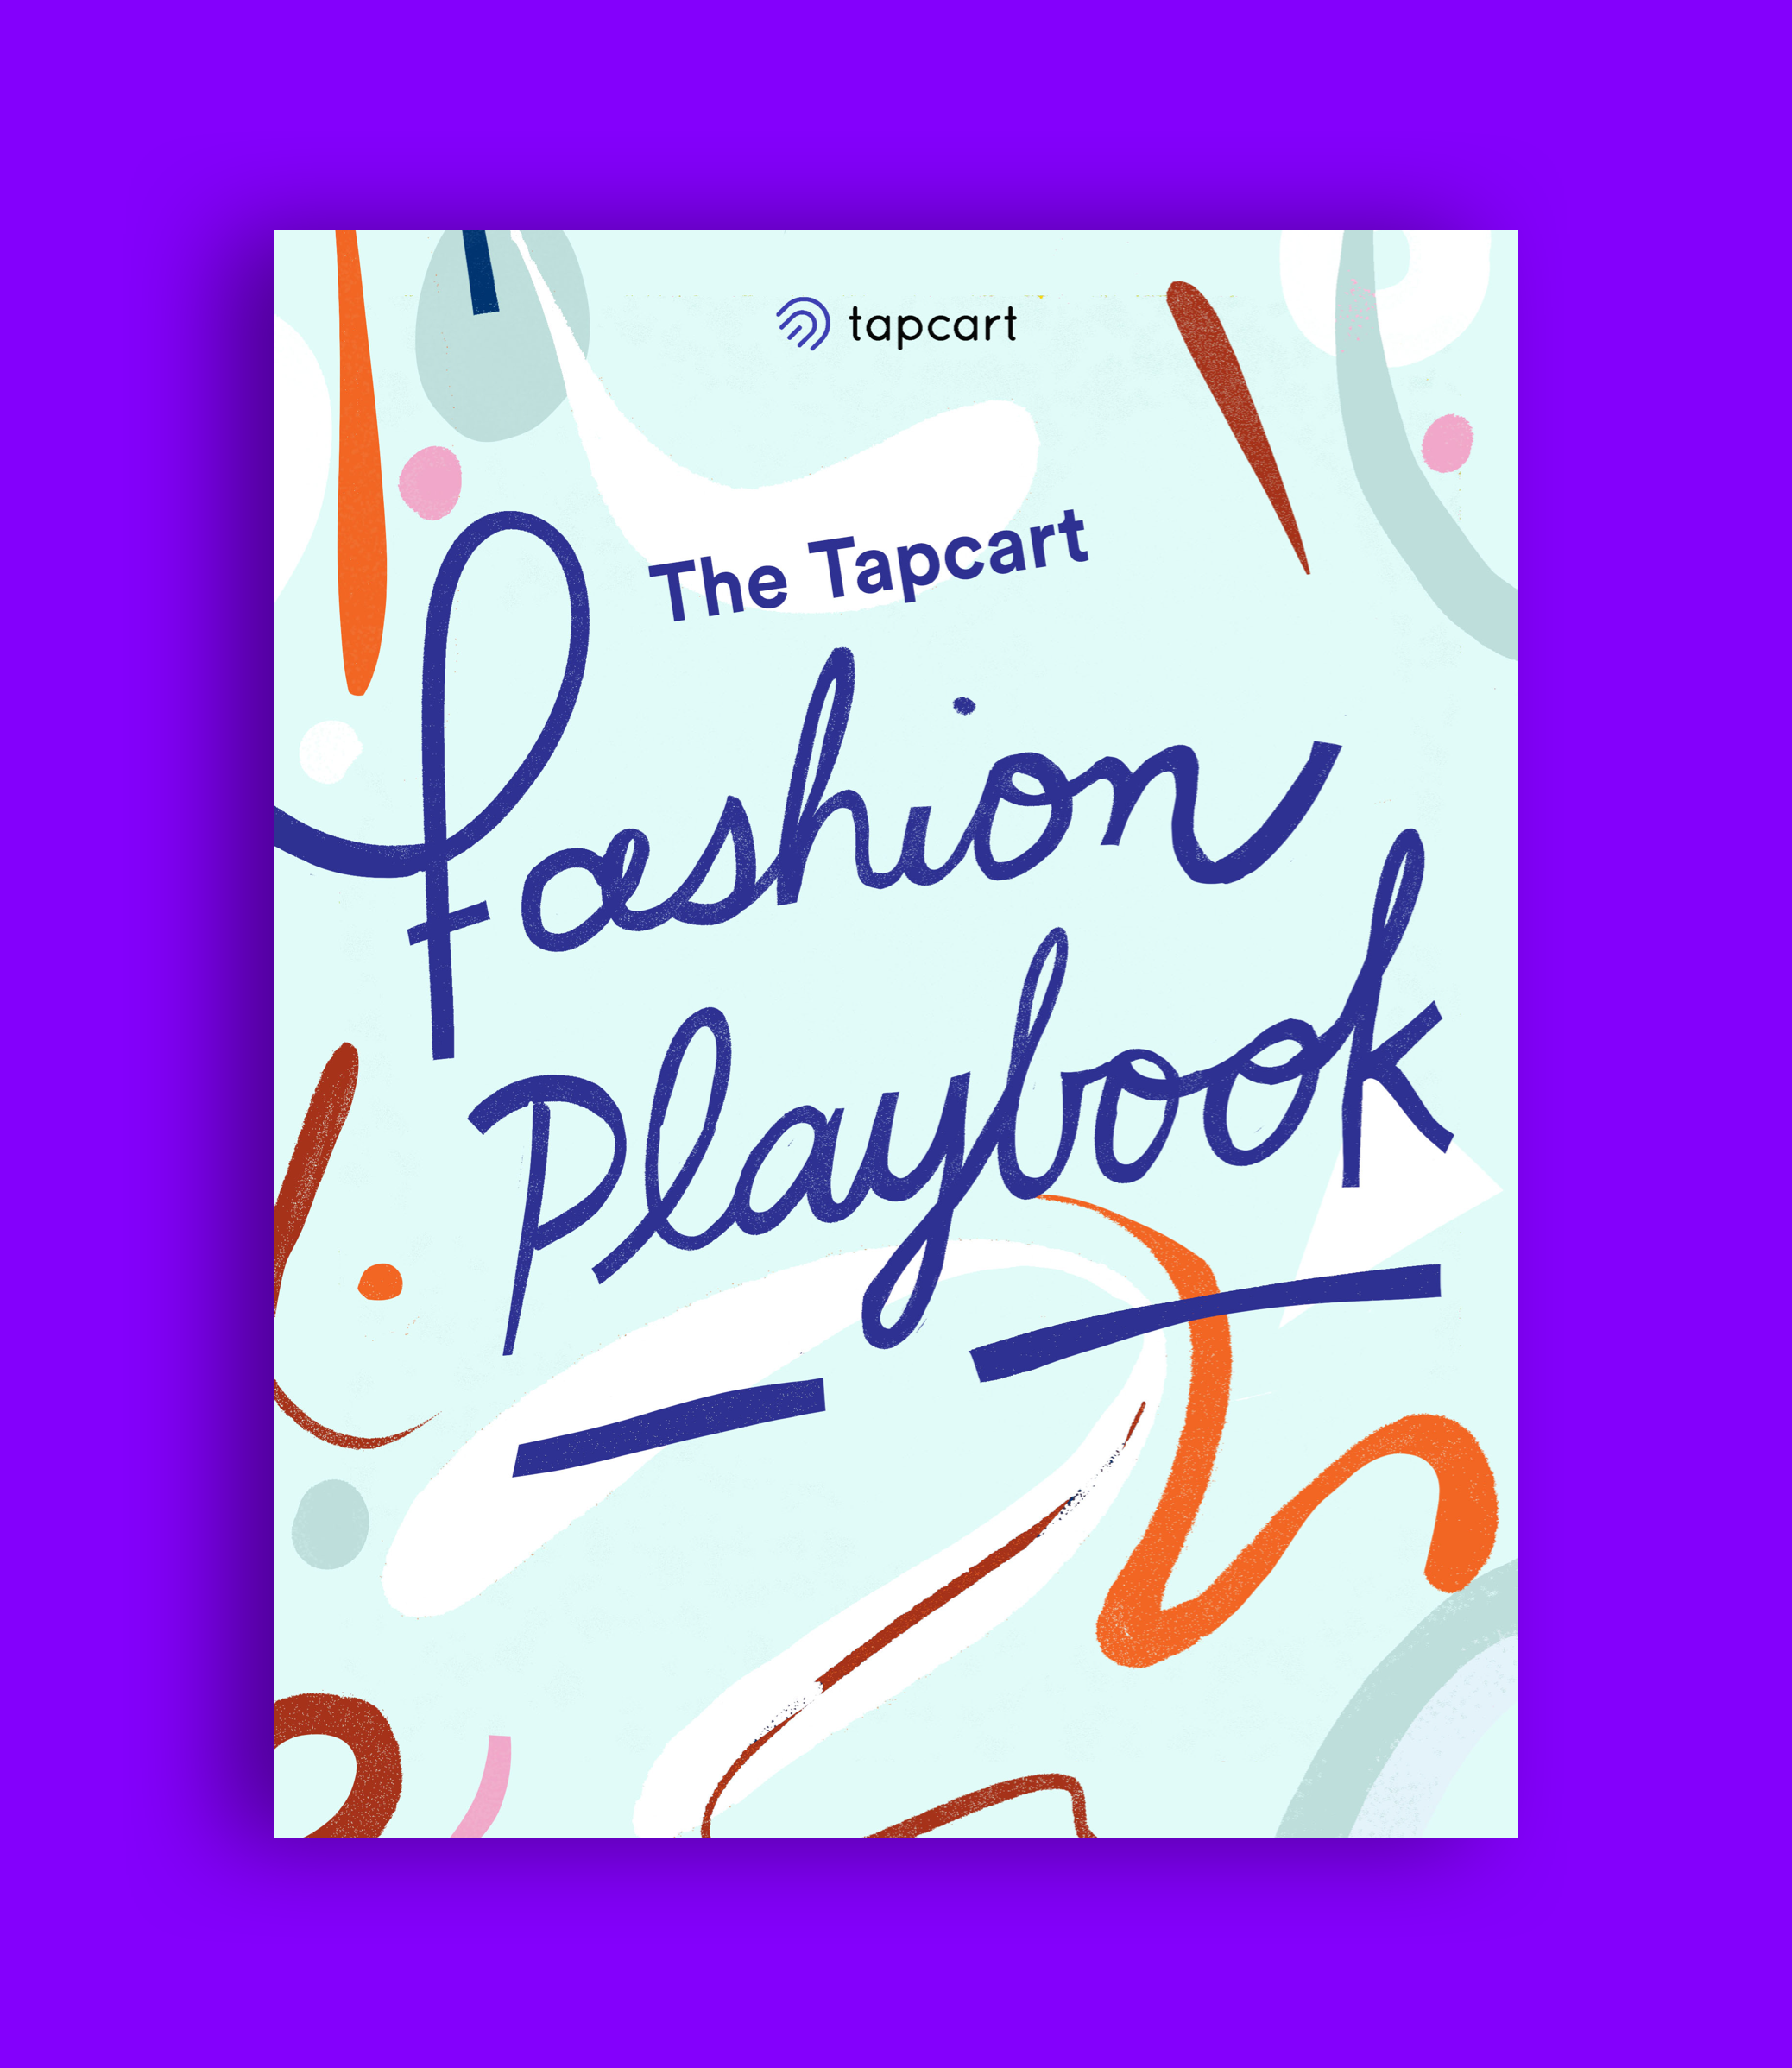 The Tapcart Fashion Playbook